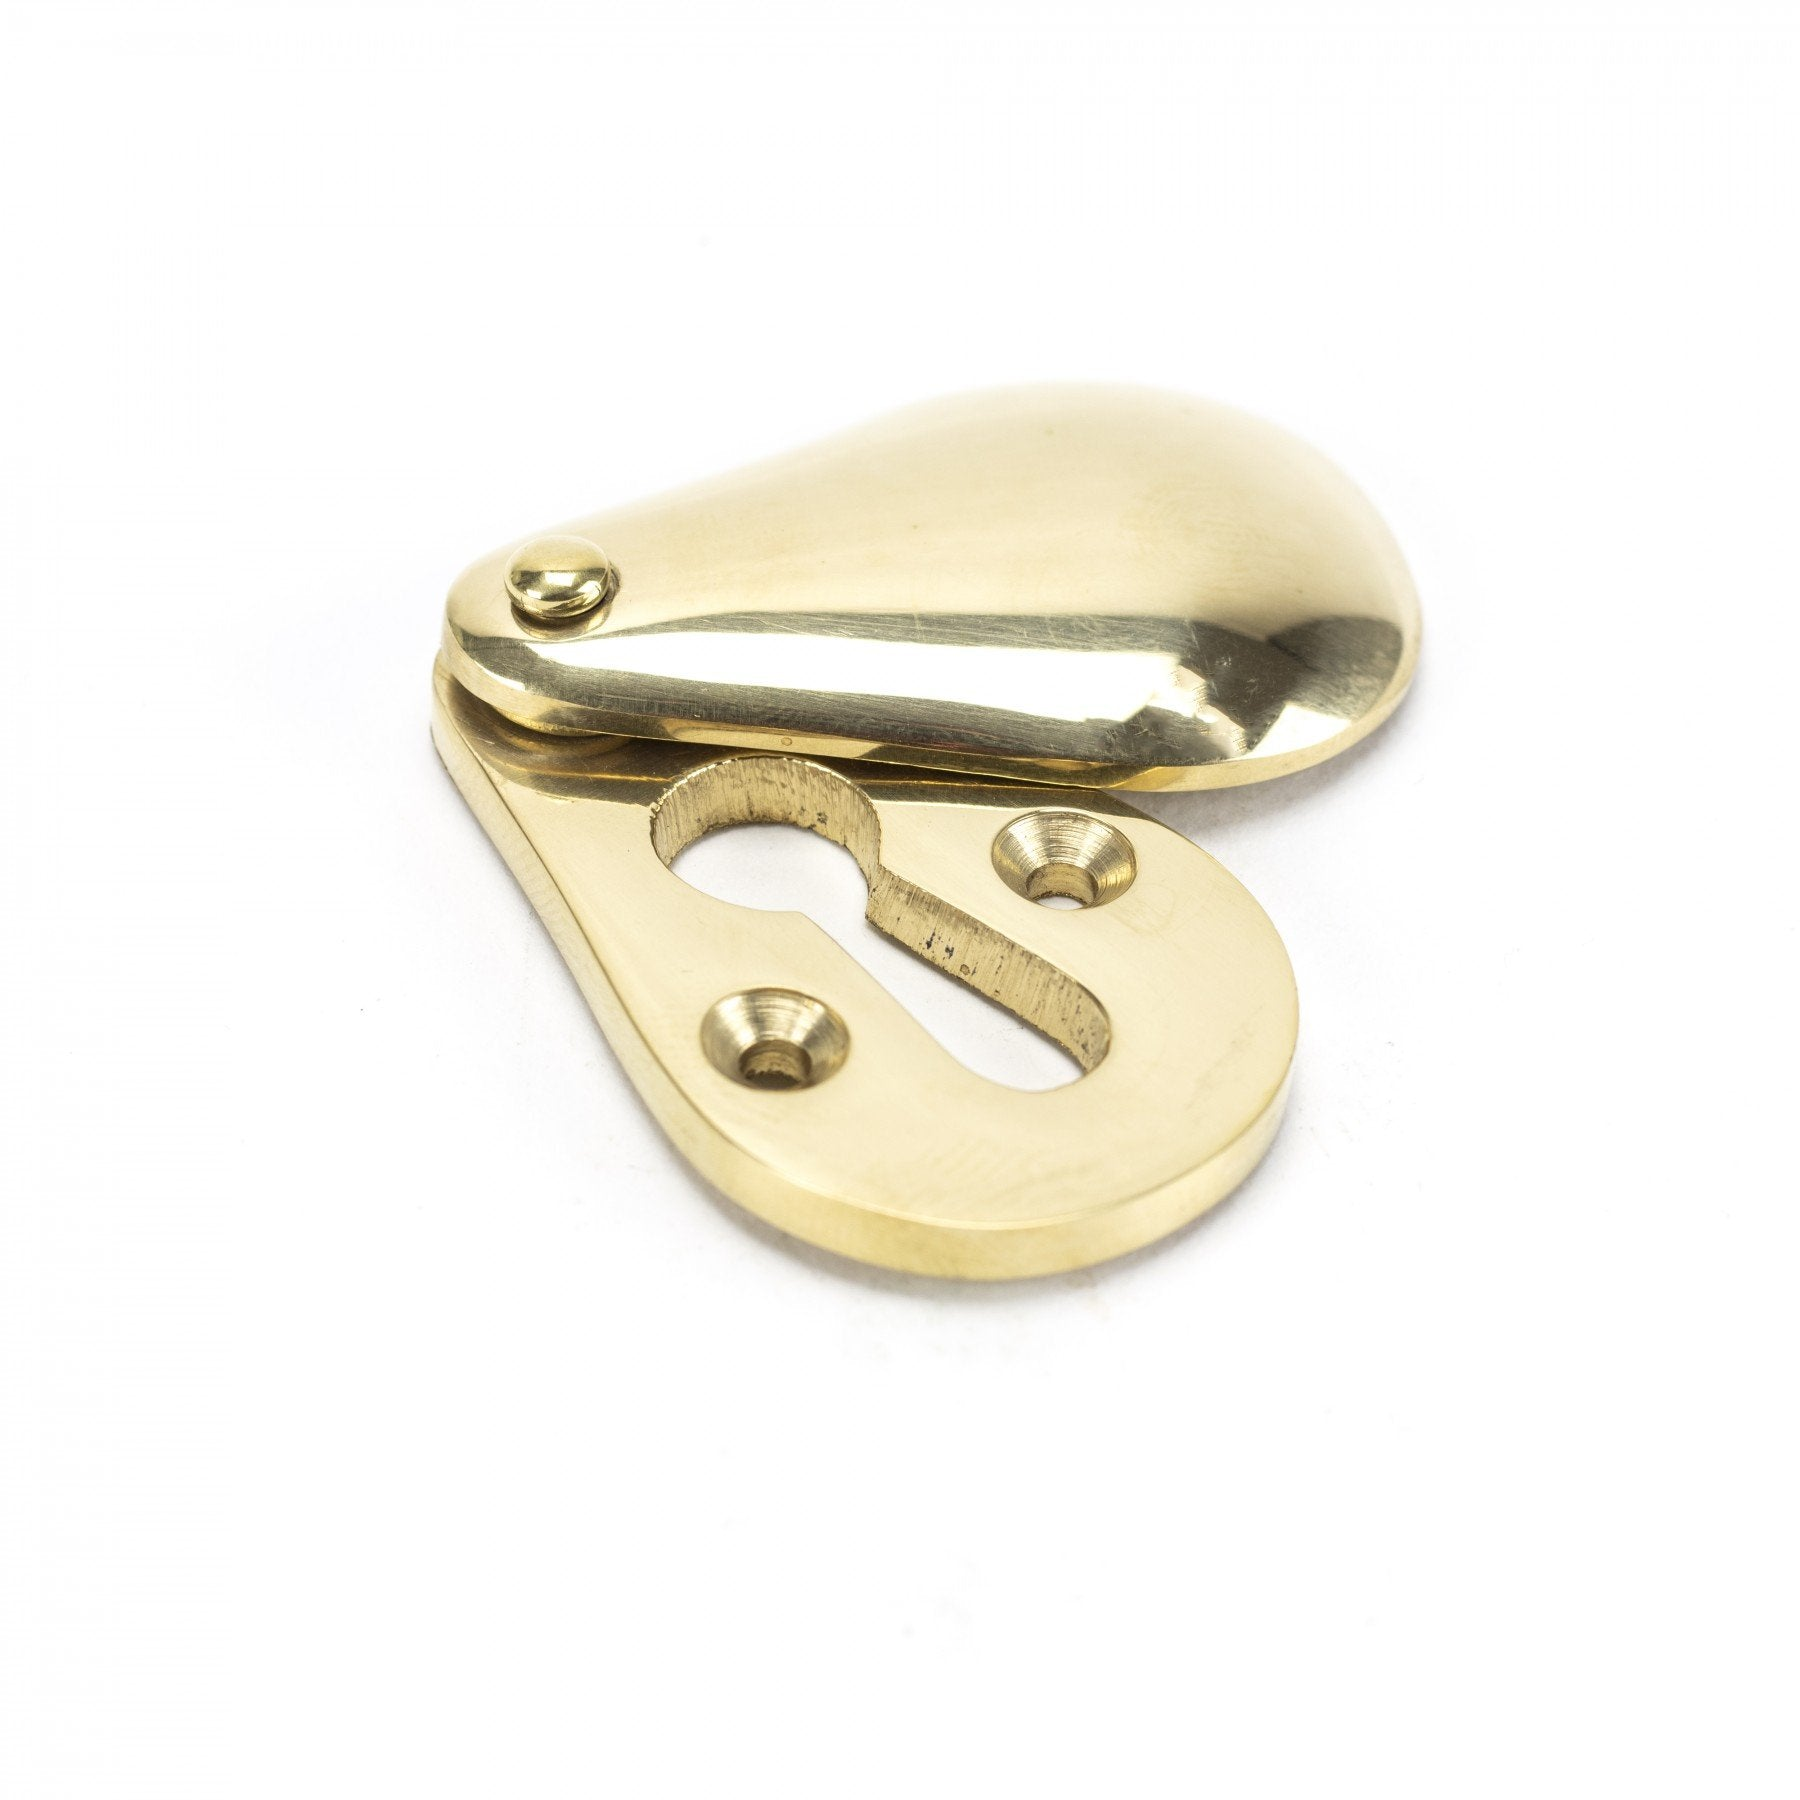 Polished Brass Plain Escutcheon - No.42 Interiors